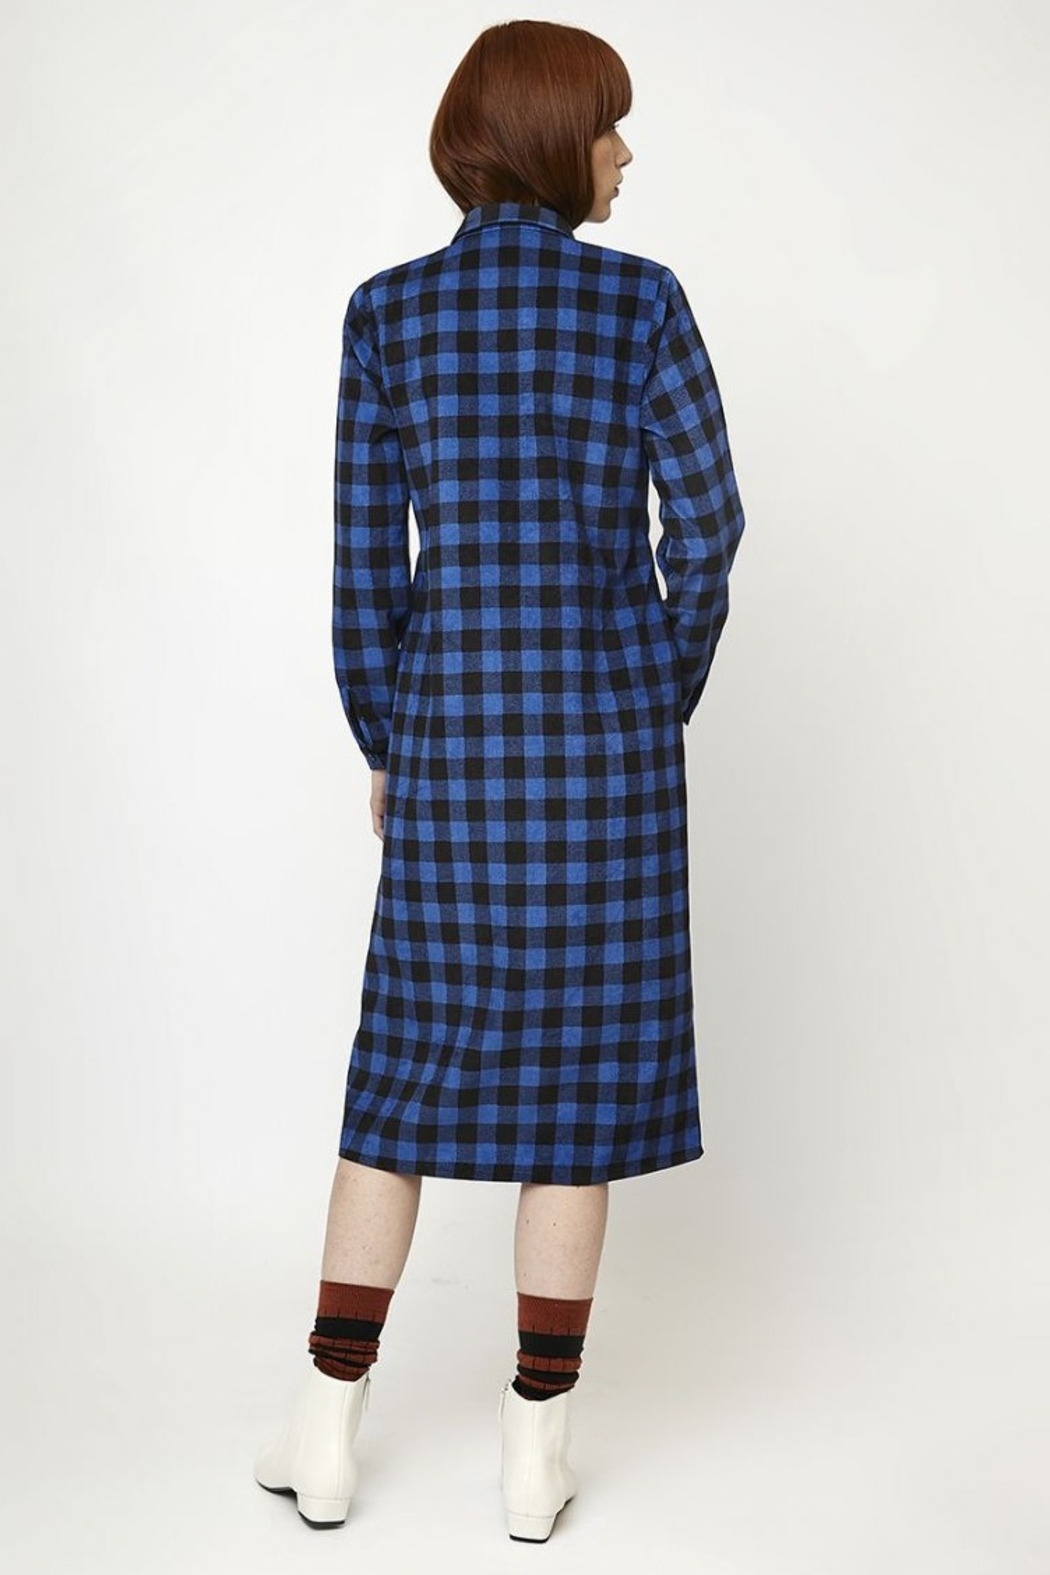 Compania Fantastica Gingham Corduroy Dress - Main Image